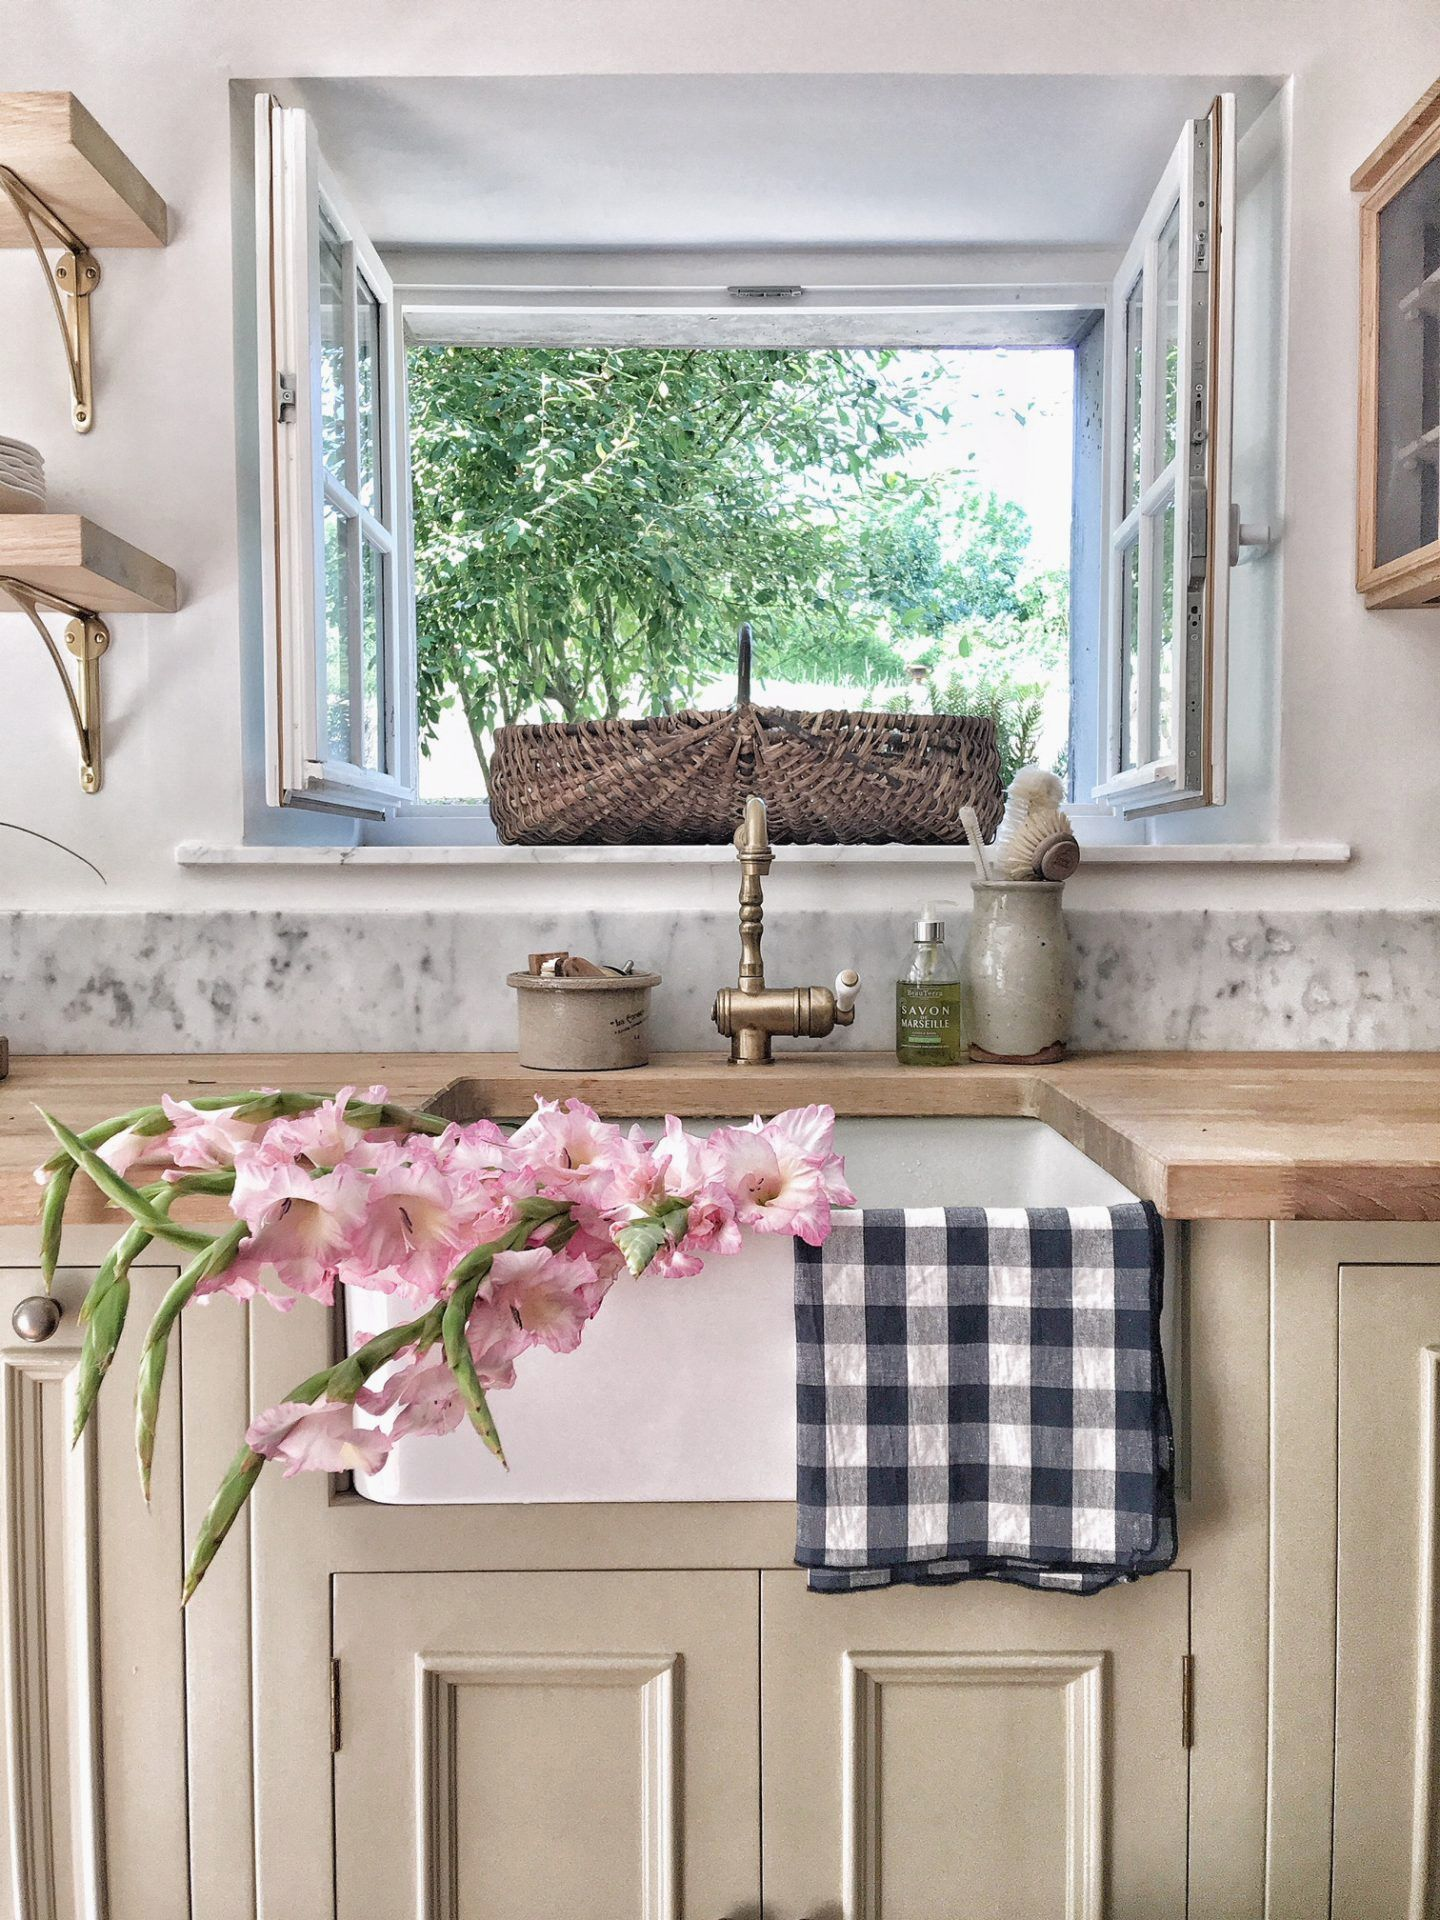 26 country rustic decor ideas in 2020 french country